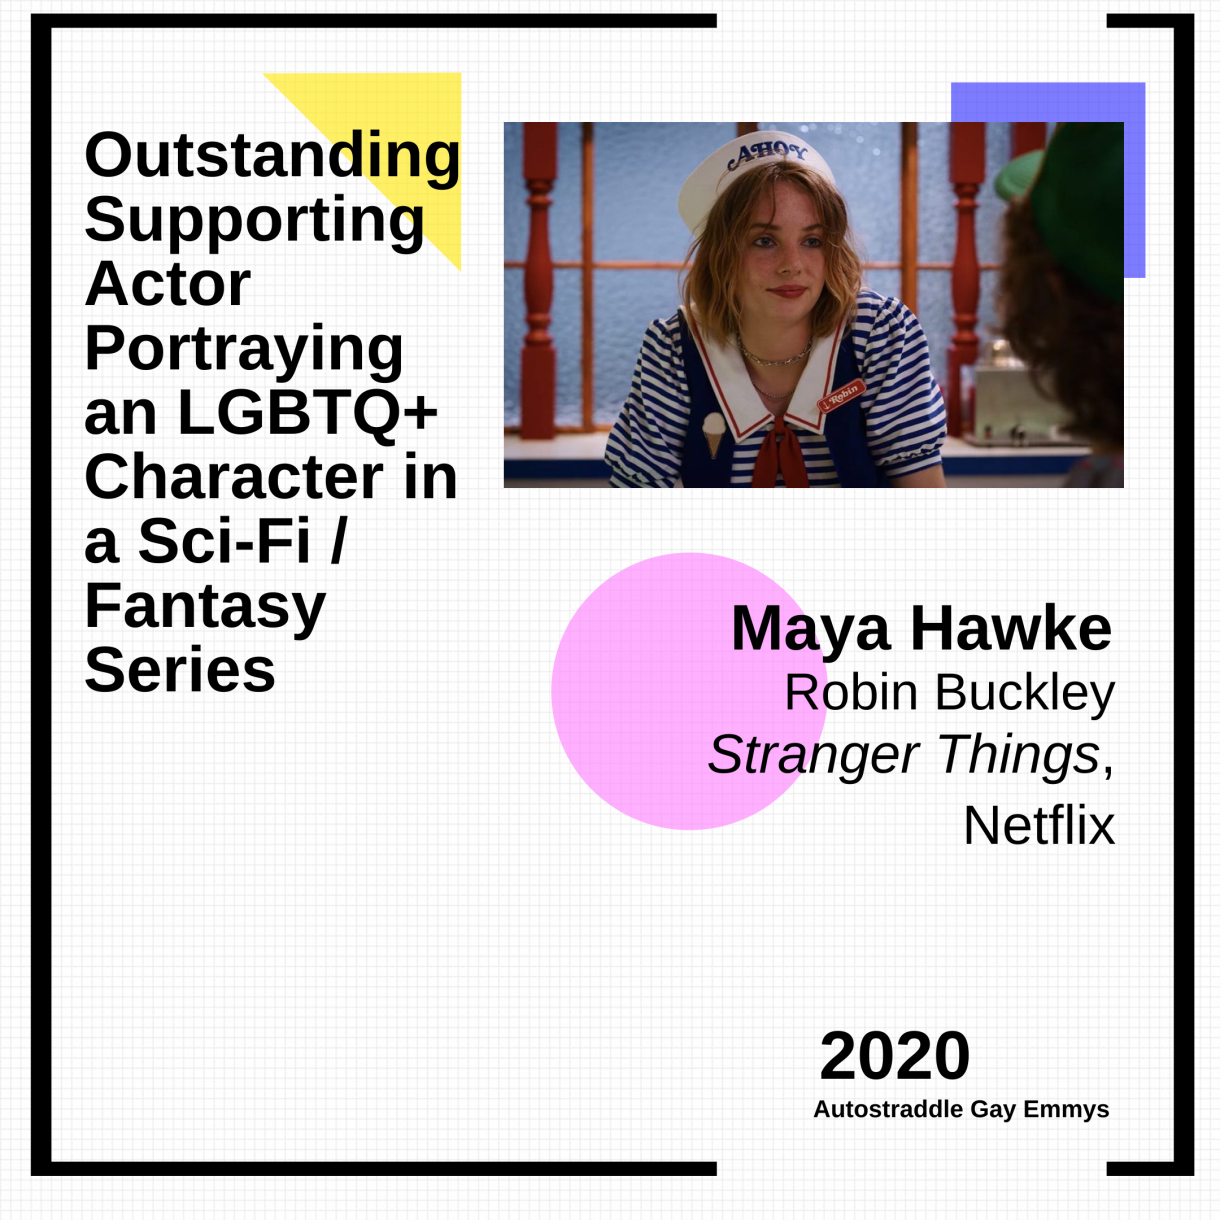 Graphic announcing Outstanding Supporting Actor Playing an LGBTQ+ Character in a Sci-Fi/Fantasy Series: Maya Hawke as Robin Buckley,Stranger Things. Pic of Robin in a striped t-shirt and sailor hat.